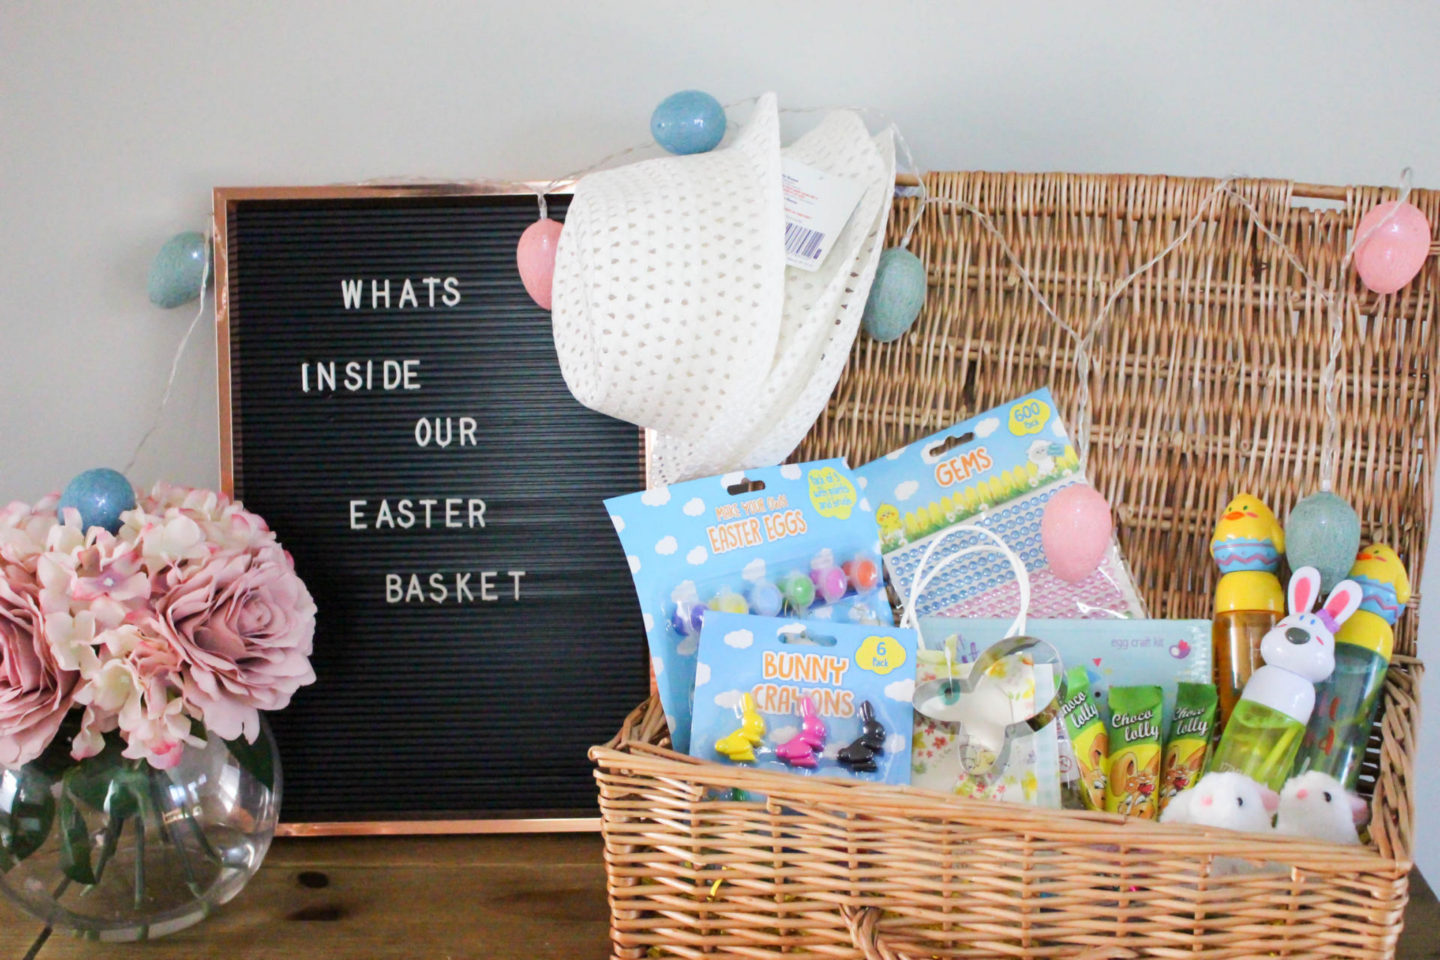 What's Inside Our Easter Basket?